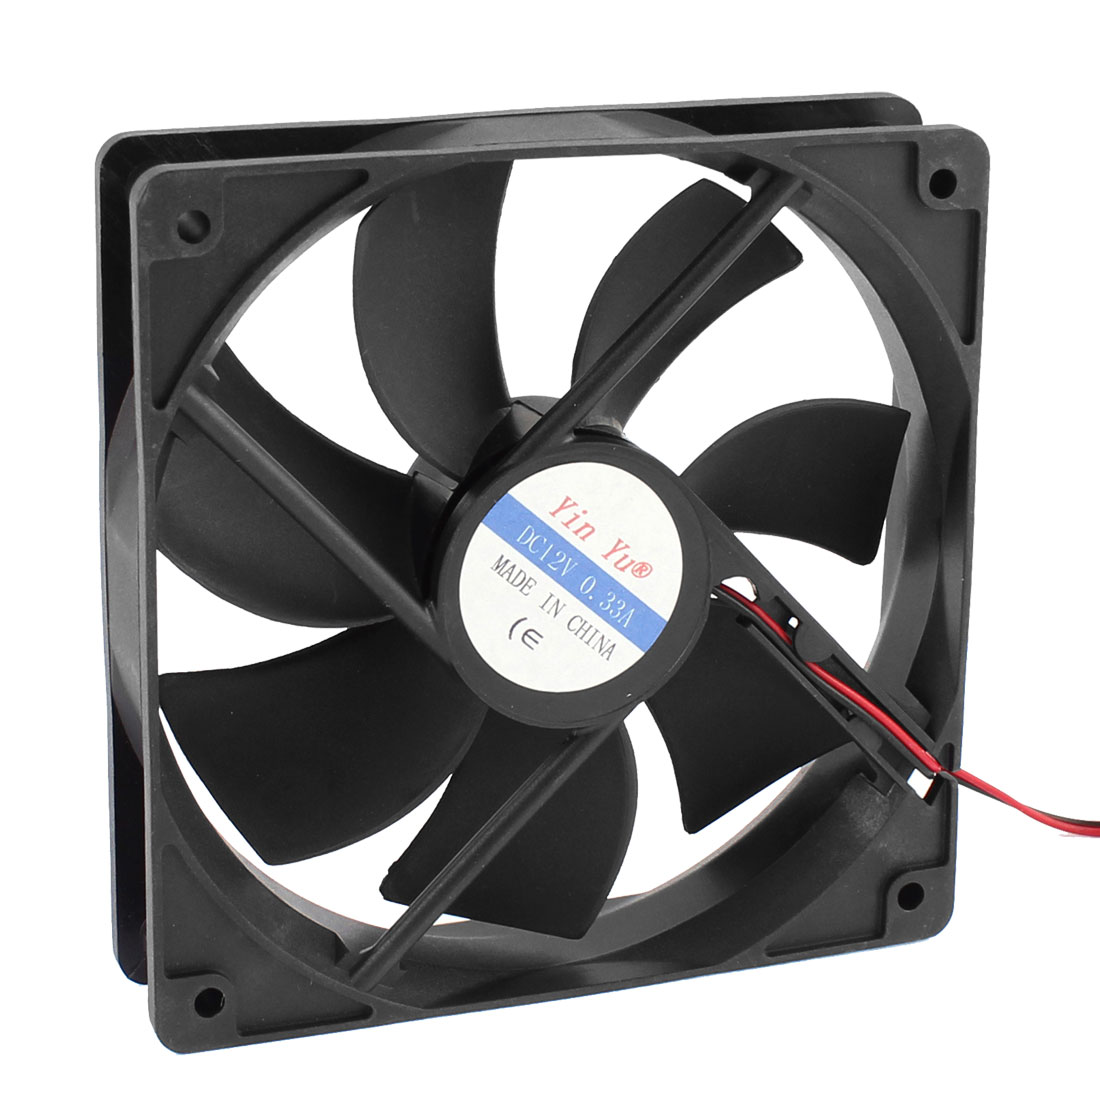 120mm DC 12V 0.33A 4-Pin Cooling Fan Black for Computer Cases CPU Cooler Radiator